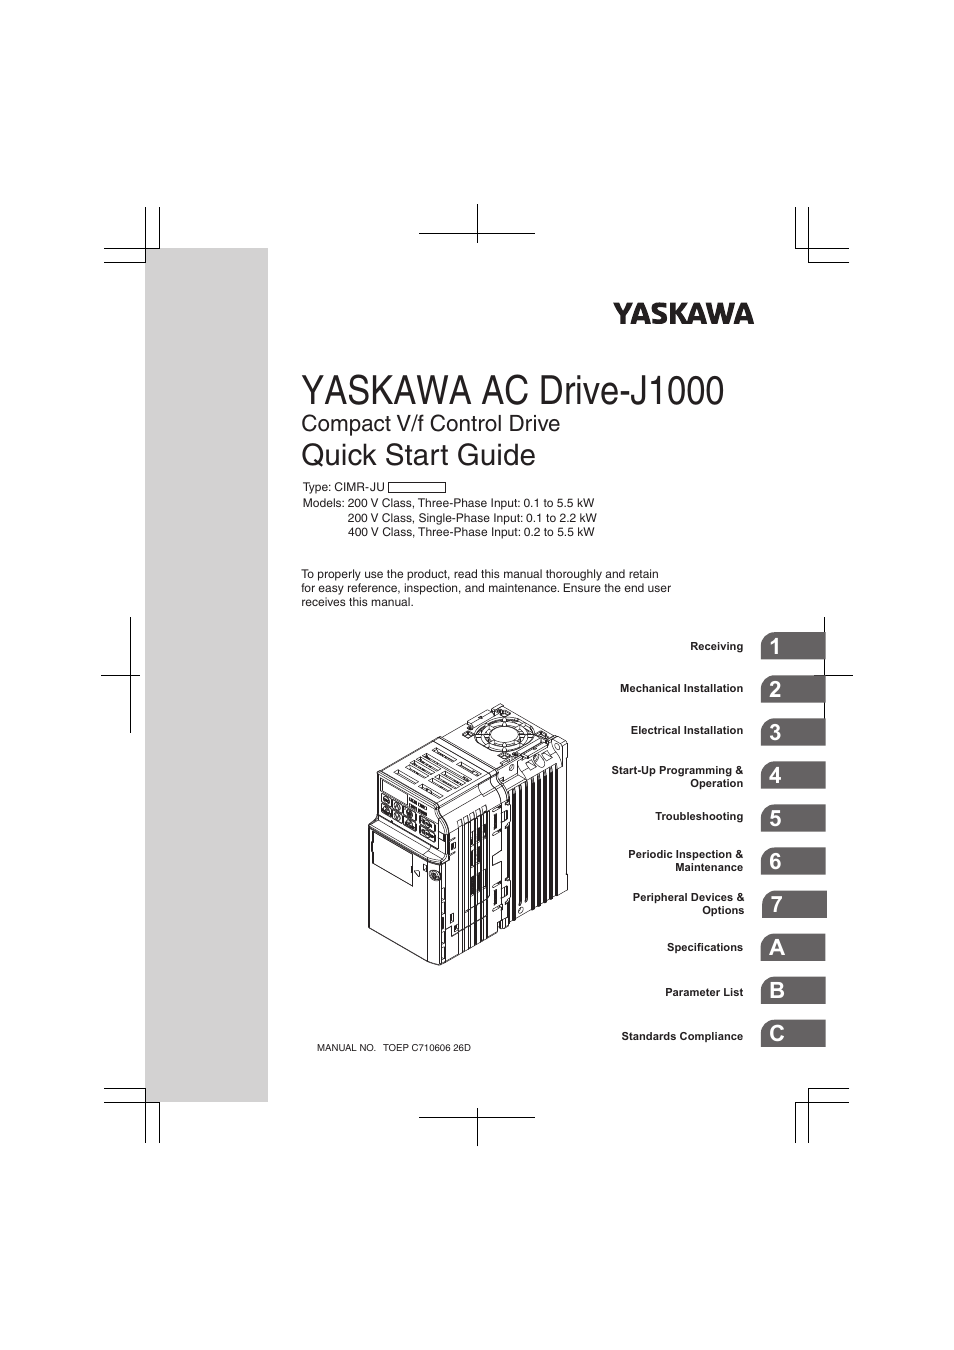 yaskawa j1000 wiring diagram 1977 ct70 compact v f control drive user manual 274 pages